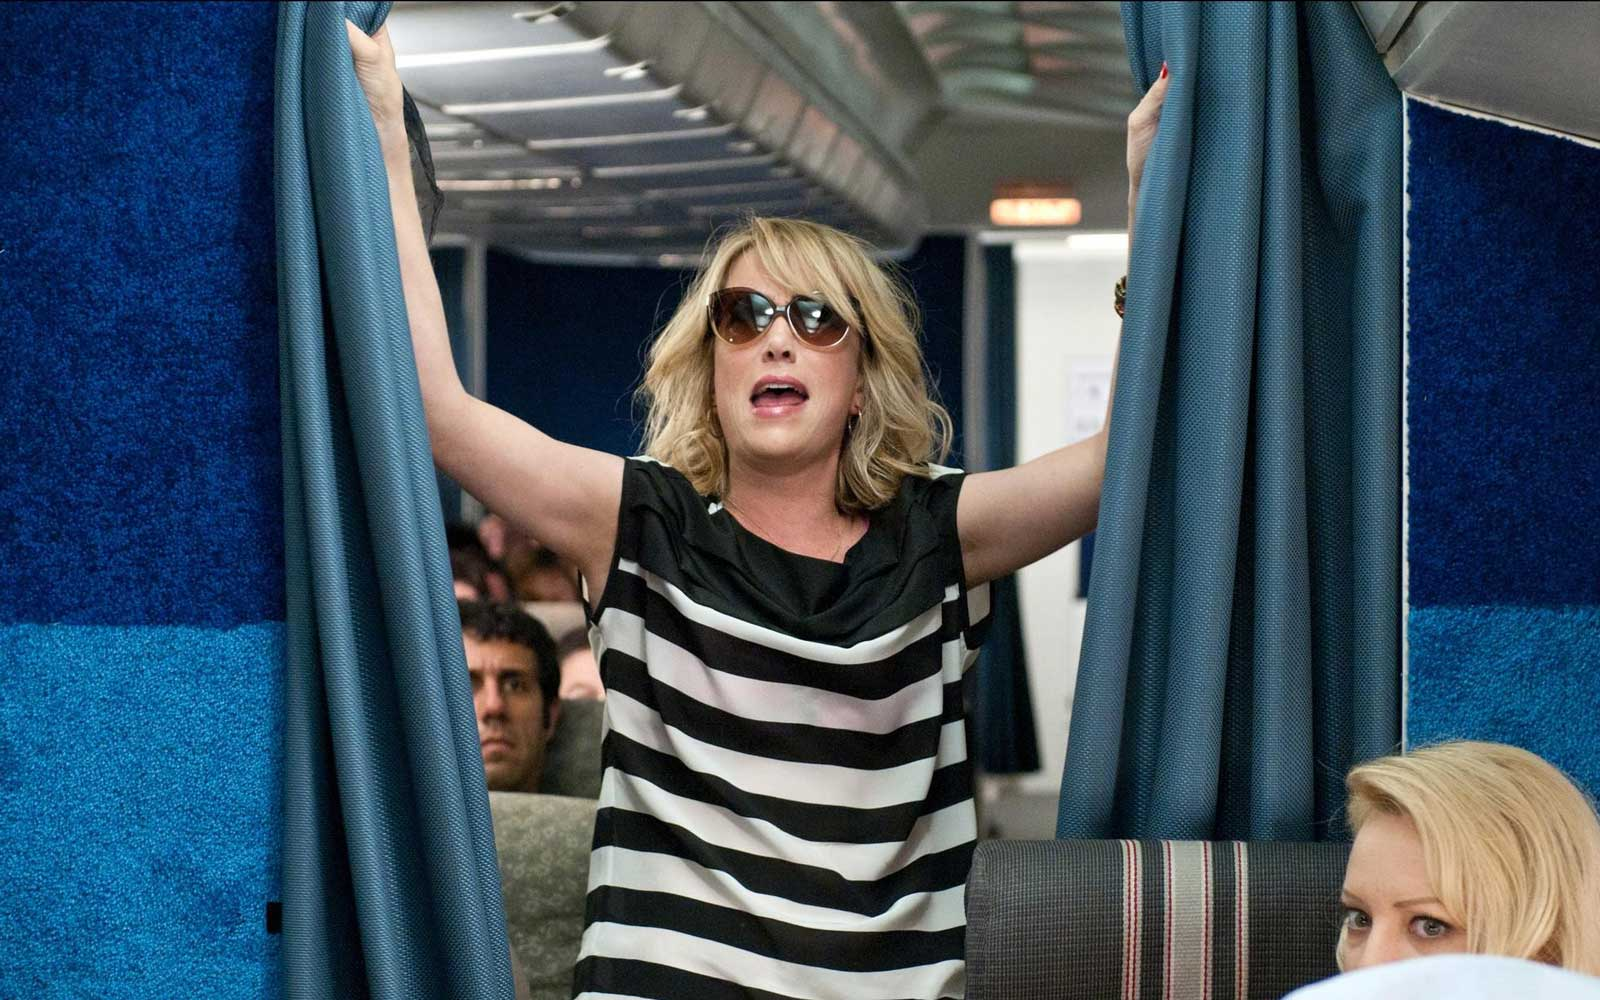 The Most Common Tactics People Use to Sneak Into First Class